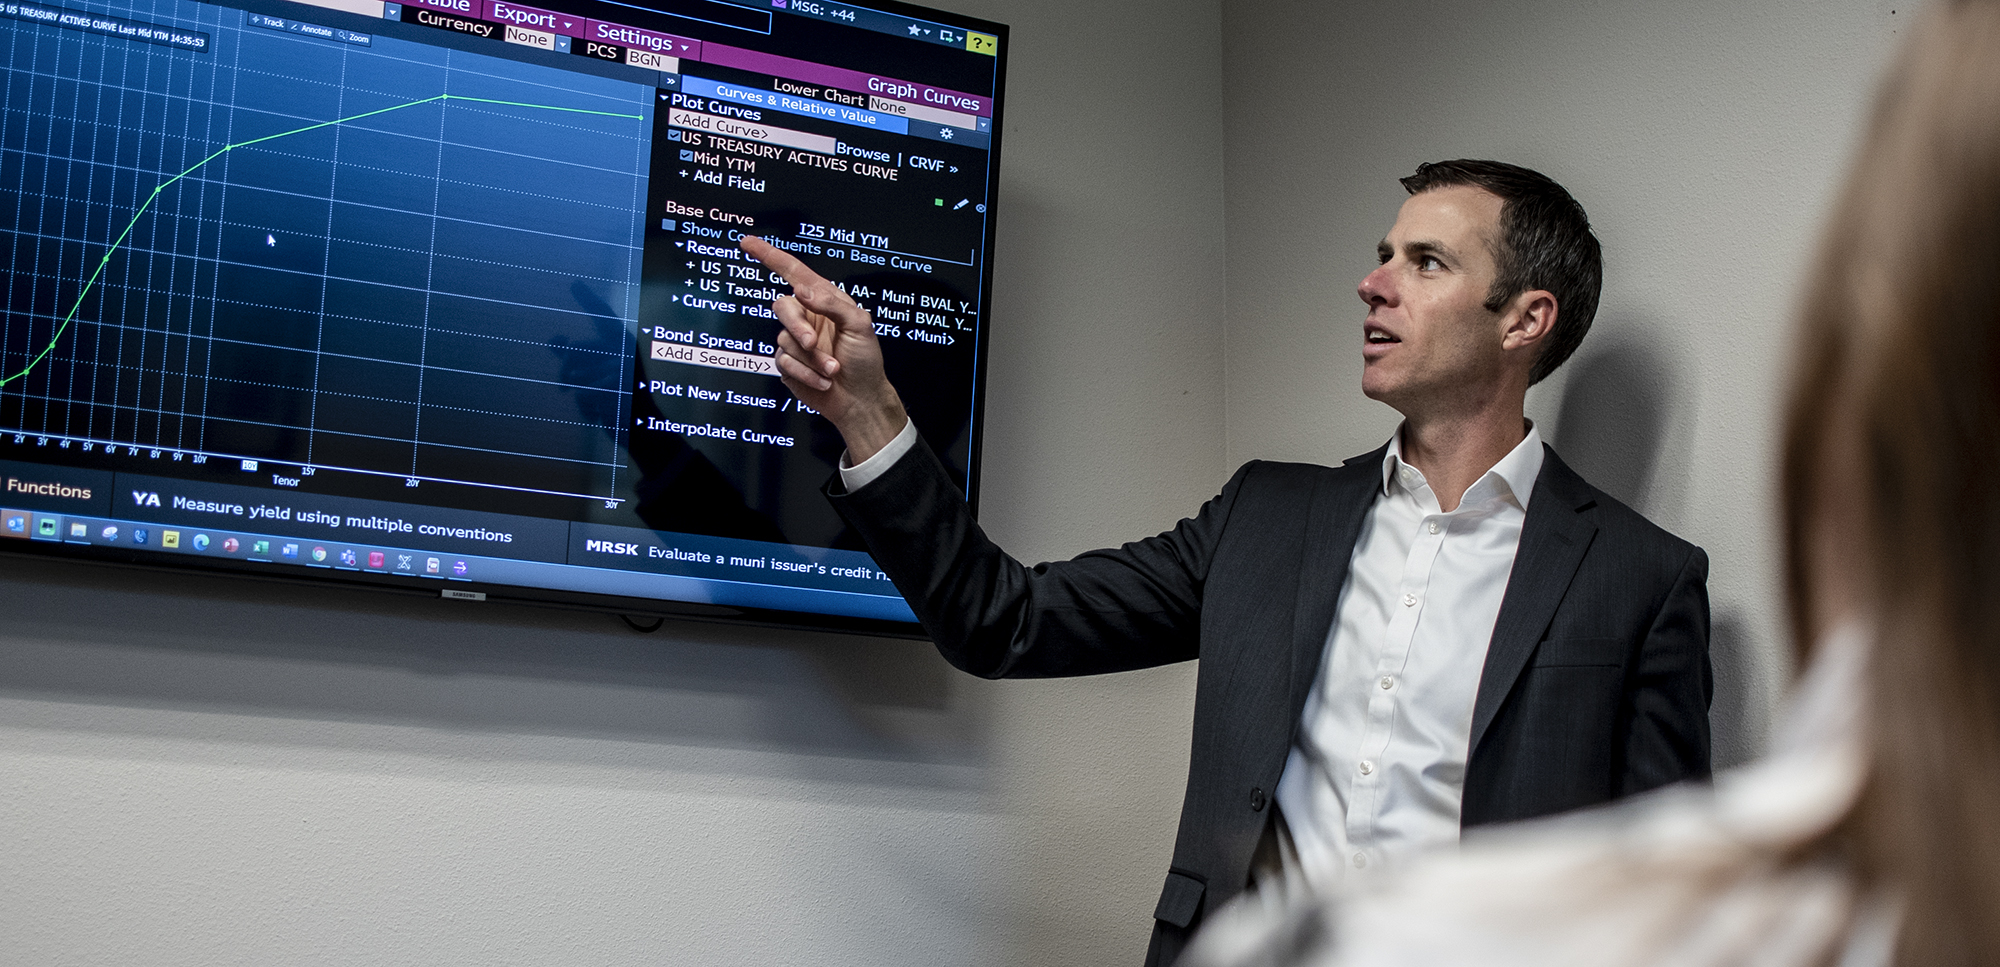 Photo of Anthony Smith, CPA, Portfolio Manager at HFG Trust pointing at financial graph on TV monitor on wall.